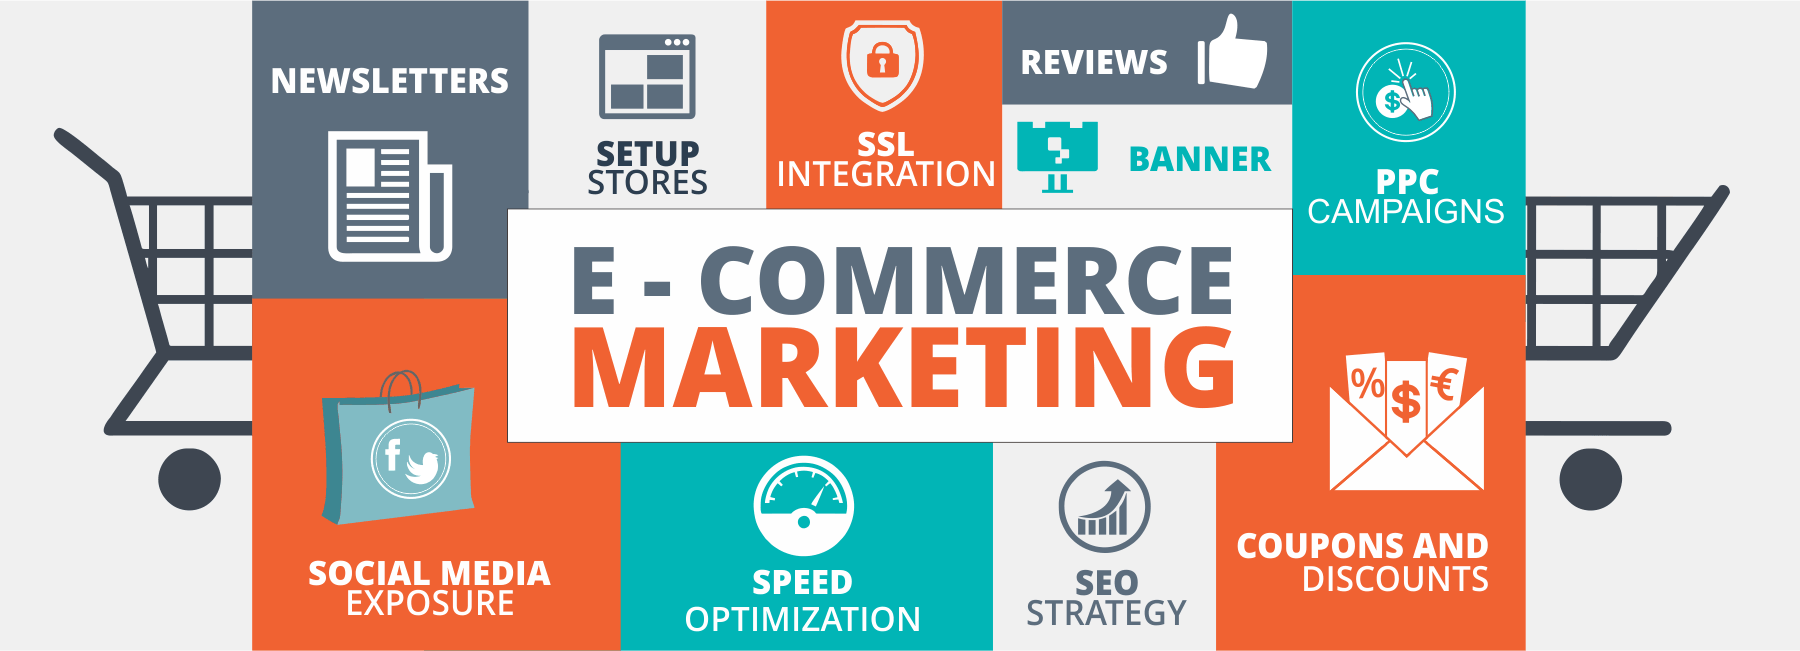 Marketing E-commerce